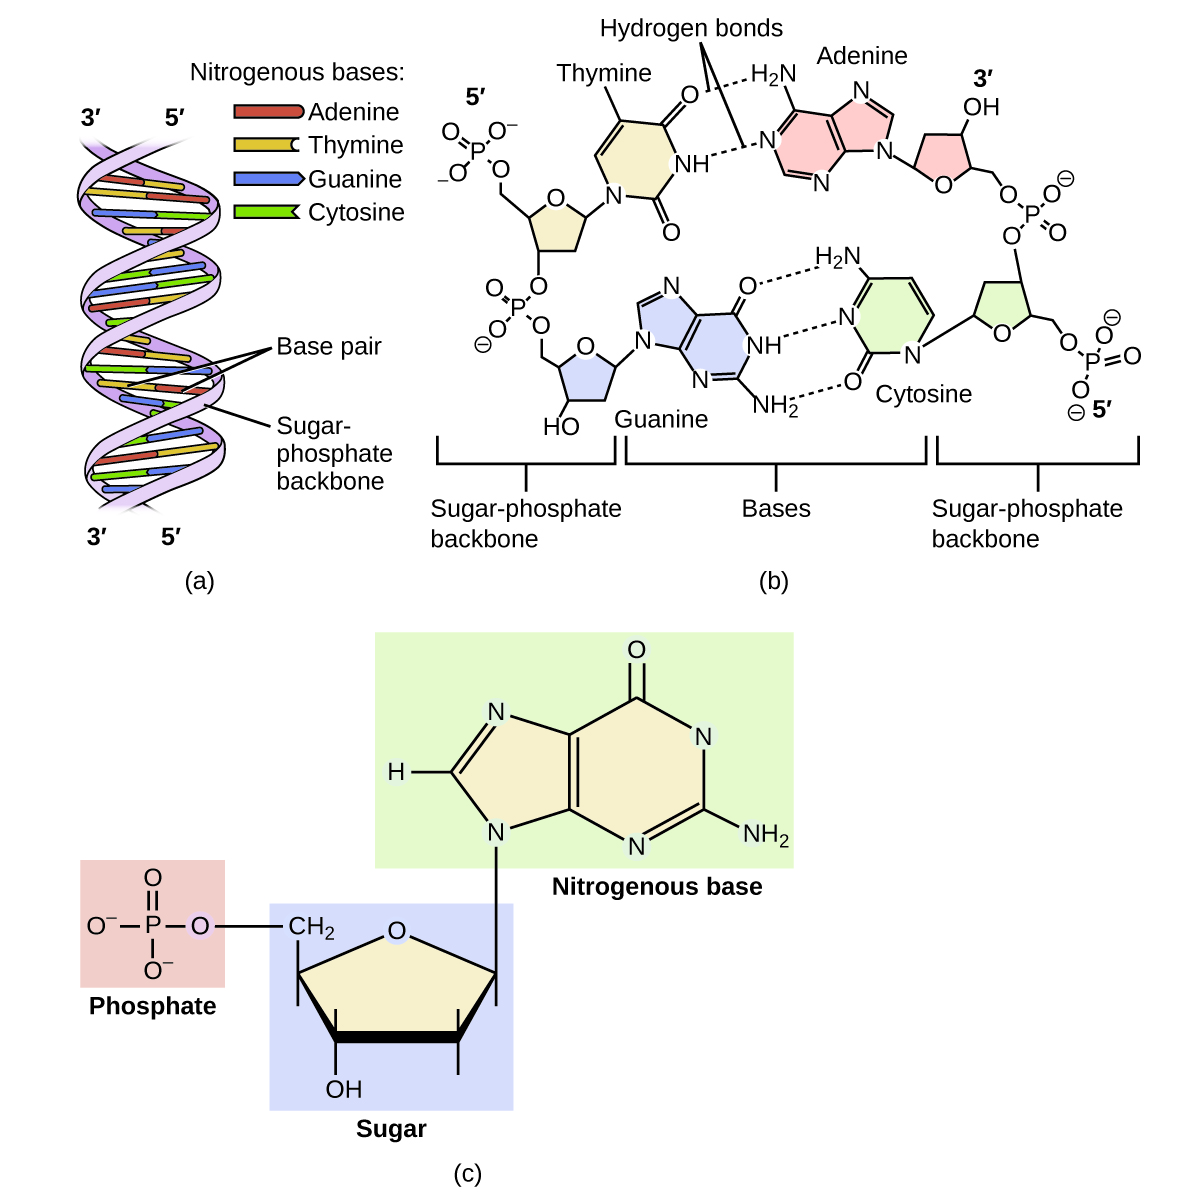 hight resolution of diagram a shows dna as a double helix composed of the nitrogenous bases adenine thymine